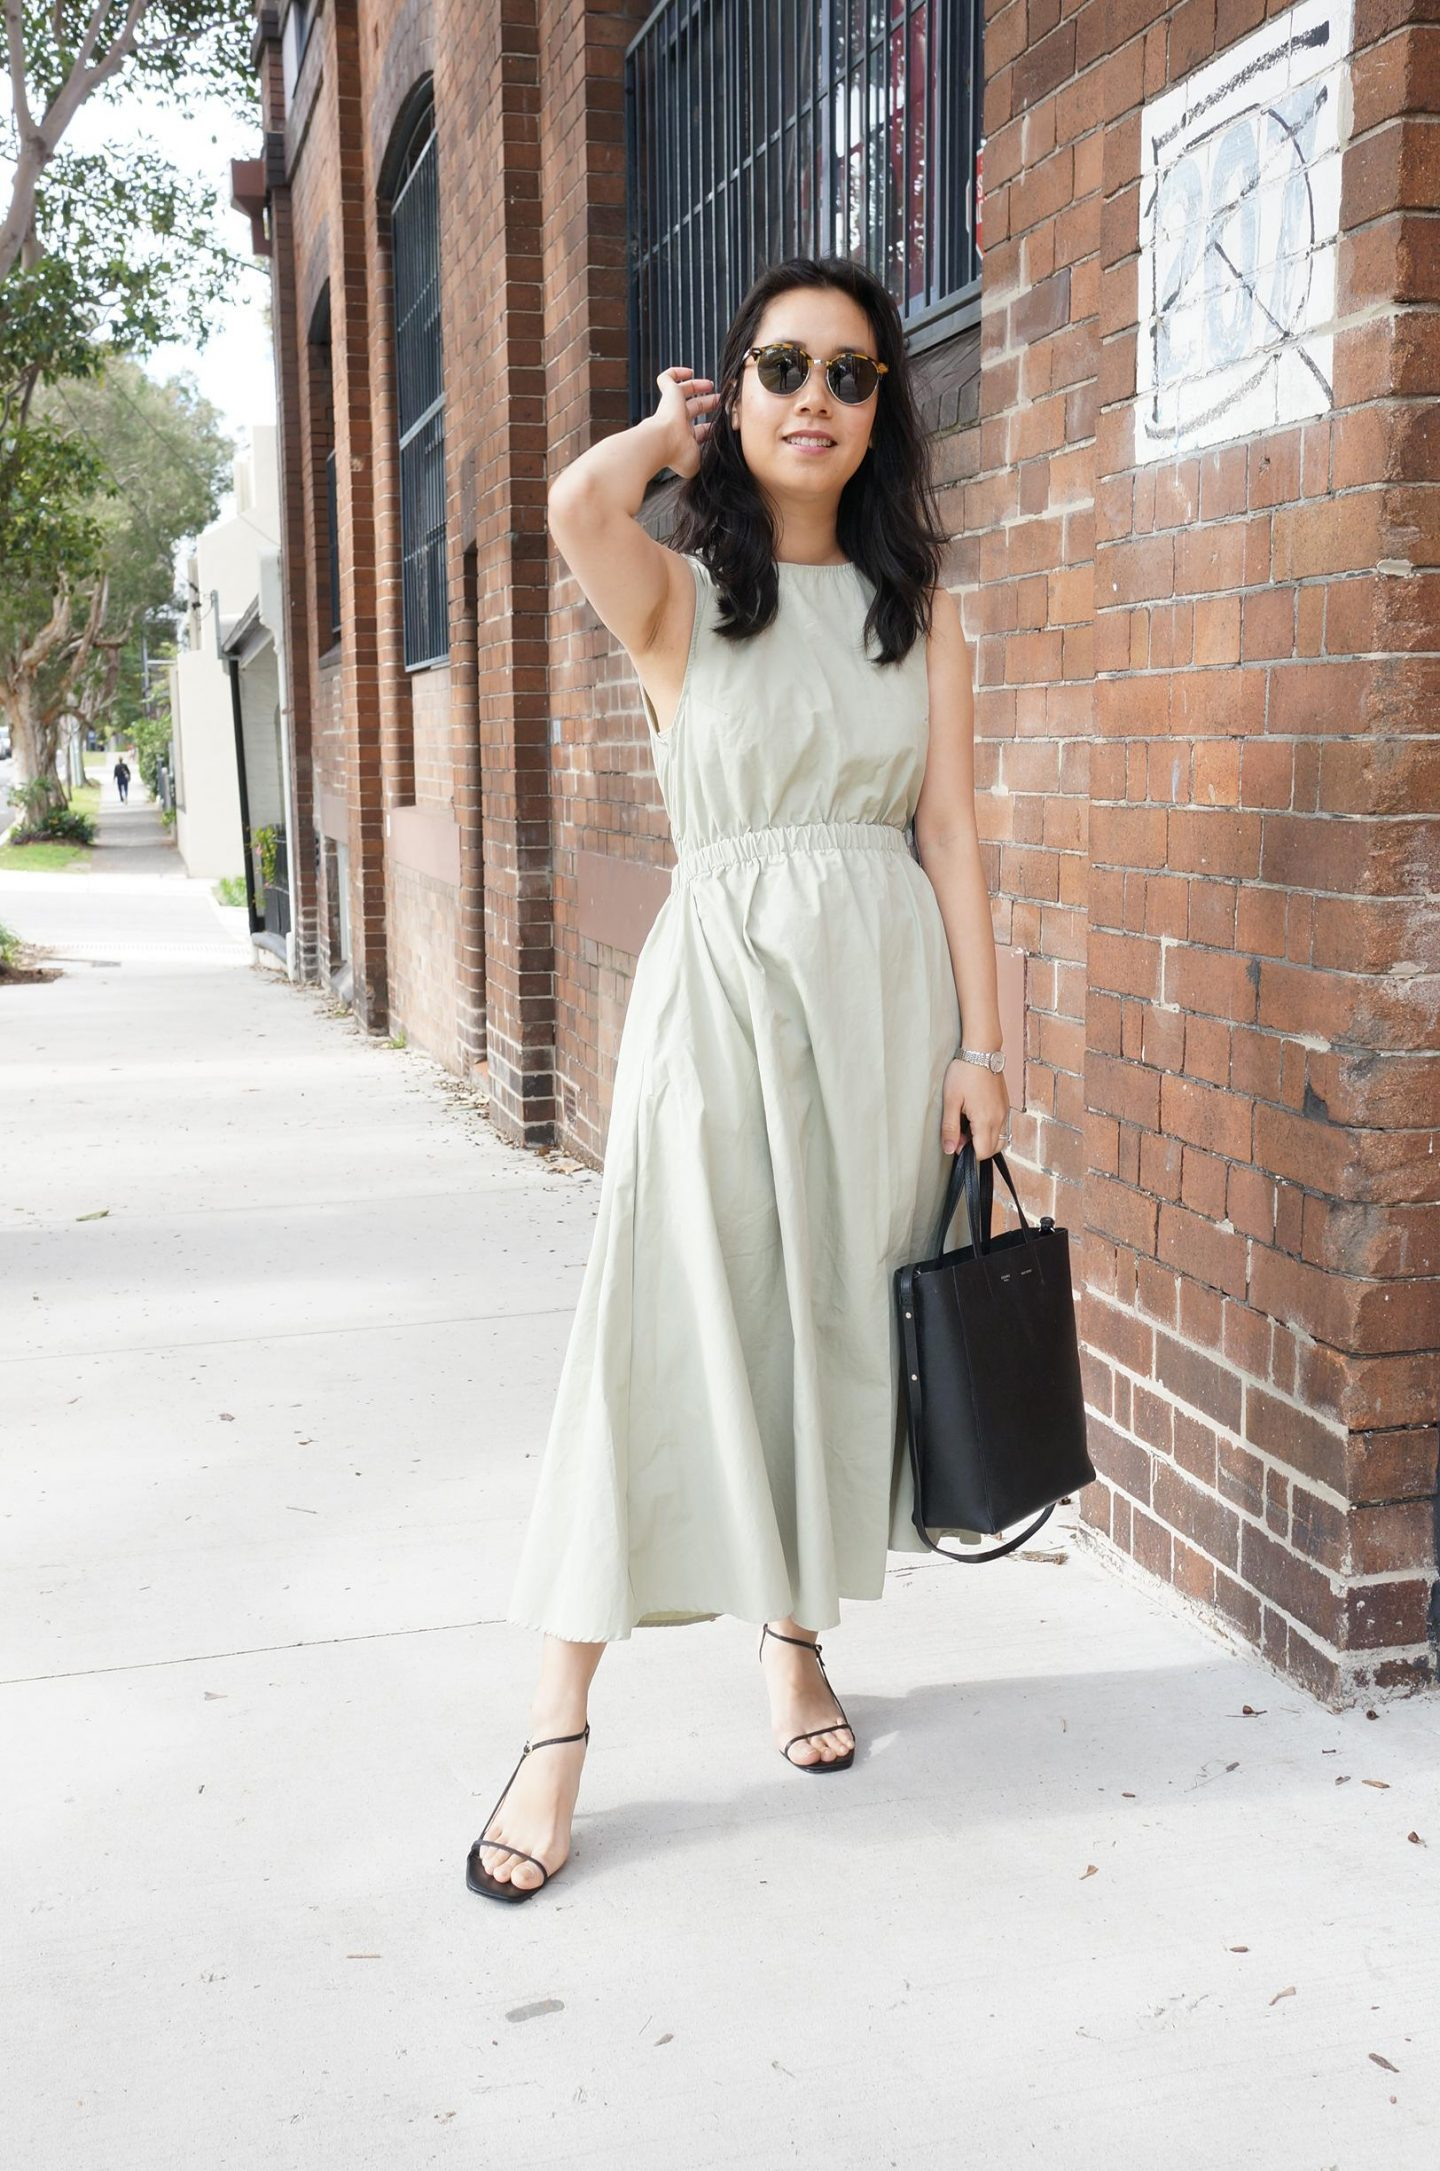 Sage Green – The Wise Choice To Brighten A Neutral Palette